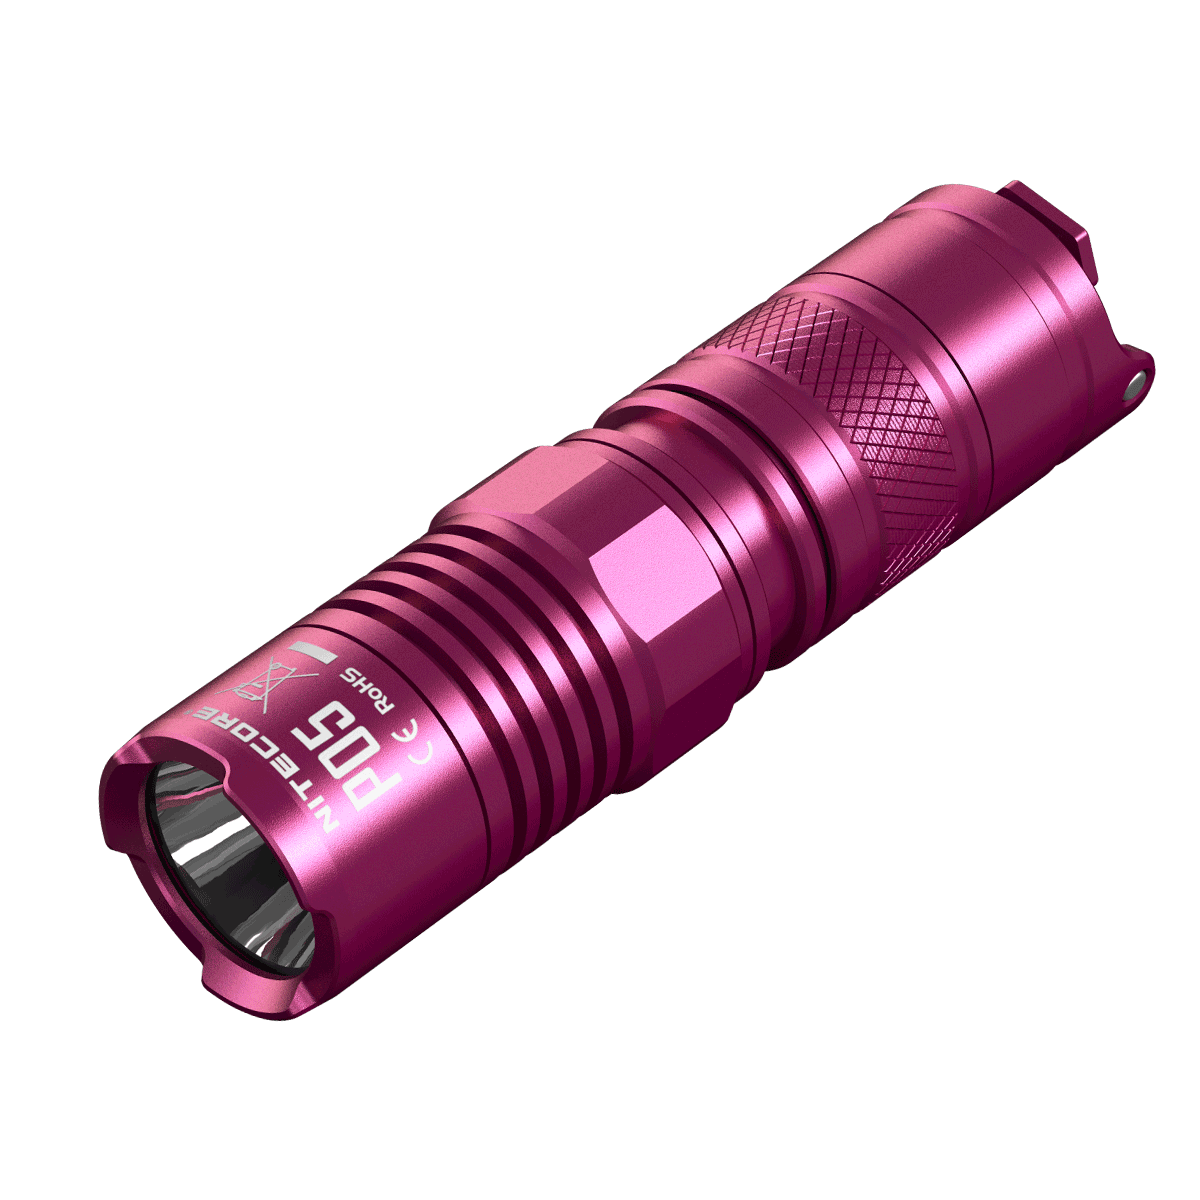 Nitecore P05 Strobe Ready Flashlight, Pink - 460 Lumens